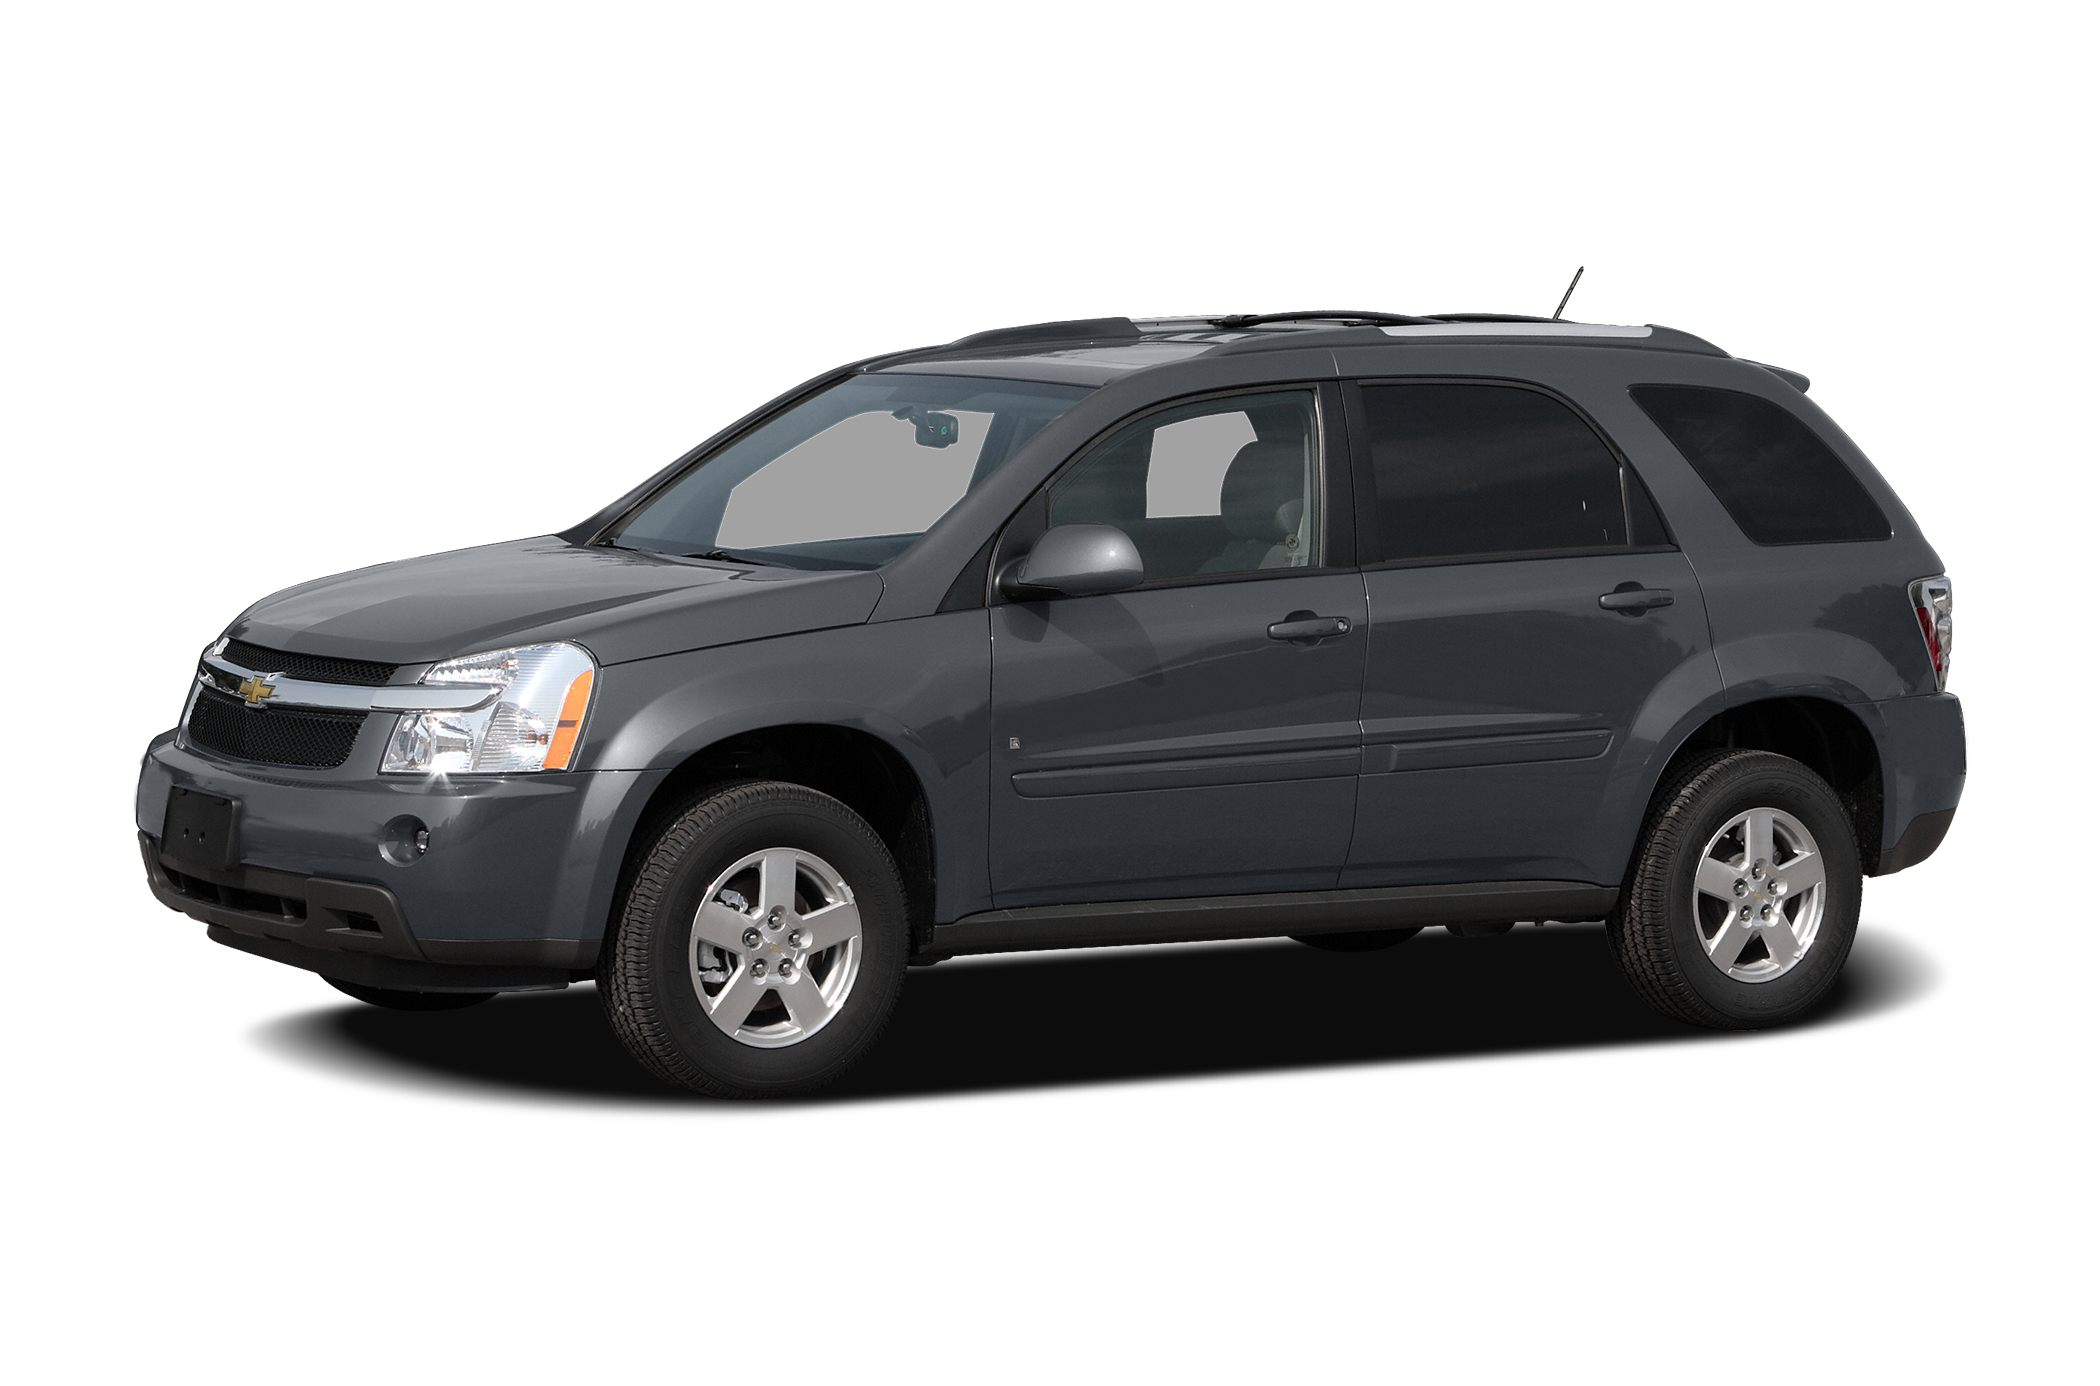 2008 Chevrolet Equinox LT SUV for sale in Saint Marys for $0 with 36,325 miles